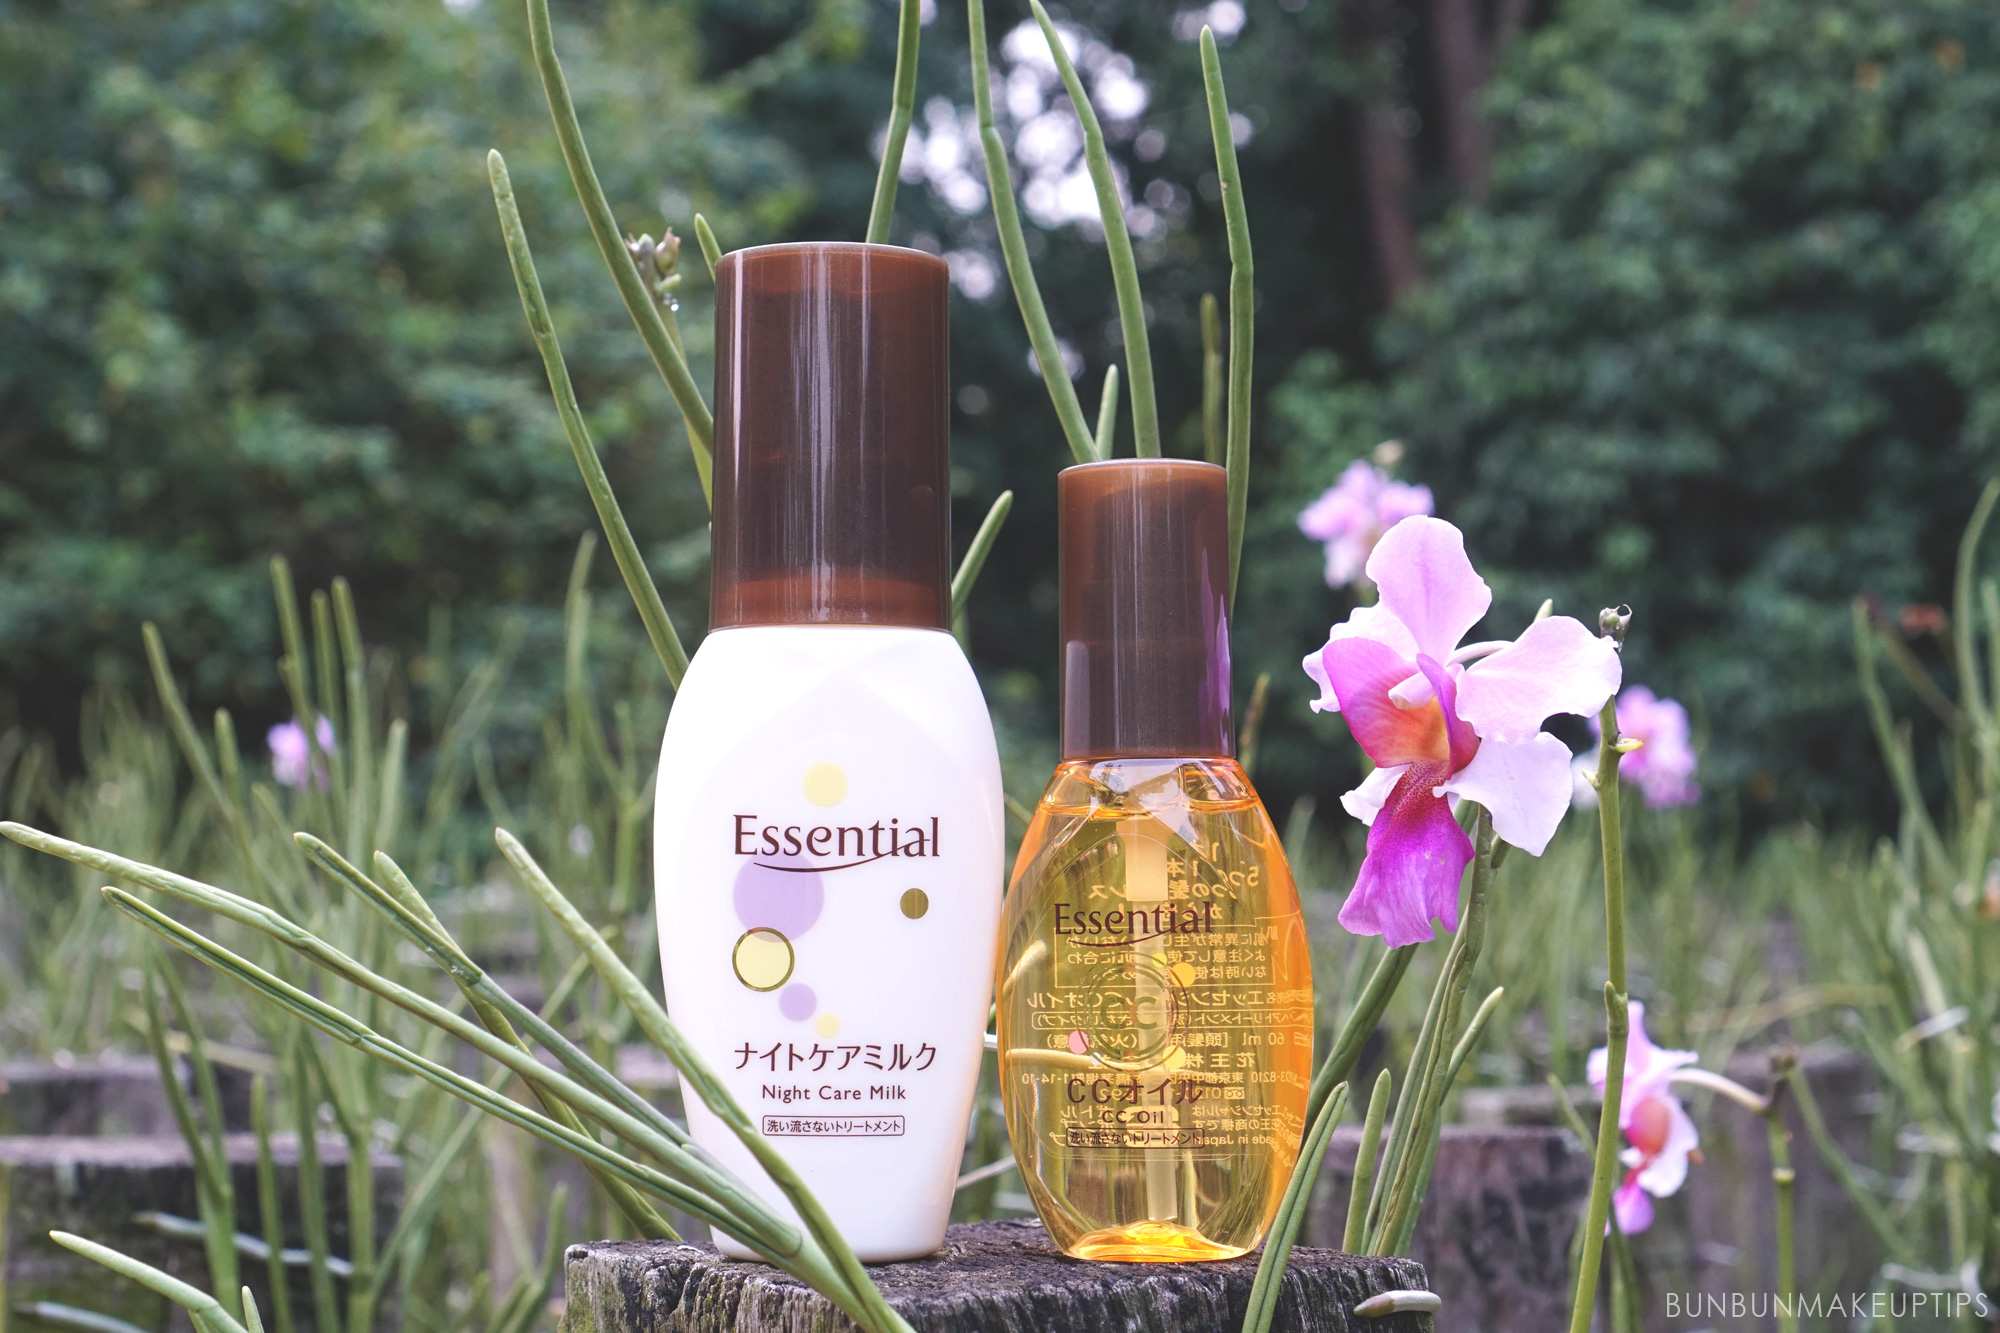 Essential-CC-Oil-and-Night-Care-Milk-For-Hair-Review_9